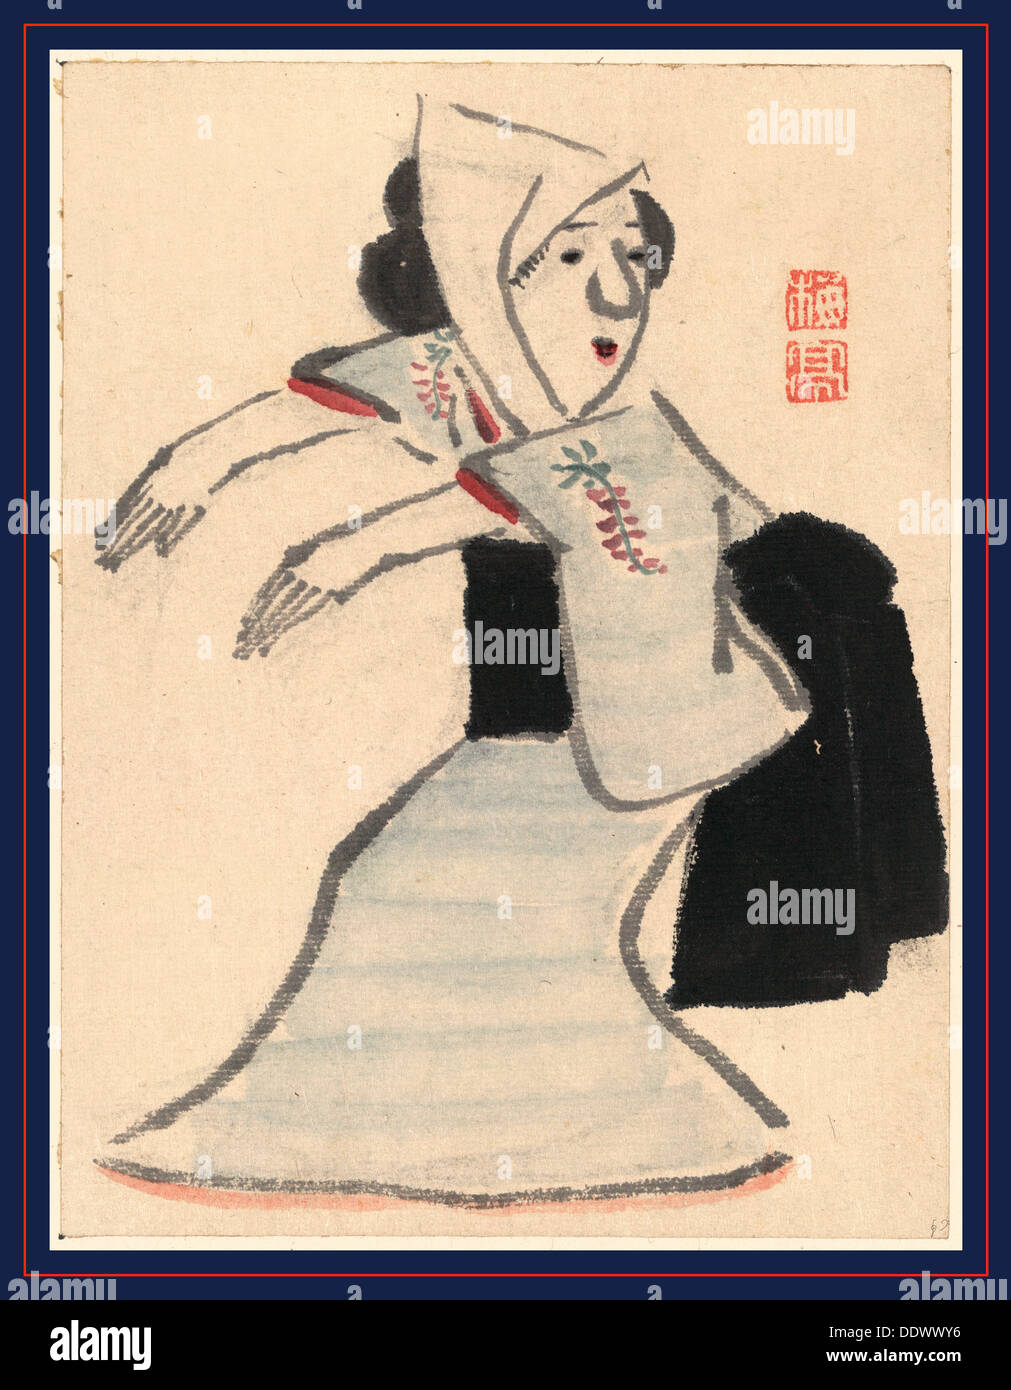 [Caricature of a woman dancing], Ki [between 1755 and 1810], 1 drawing : - Stock Image